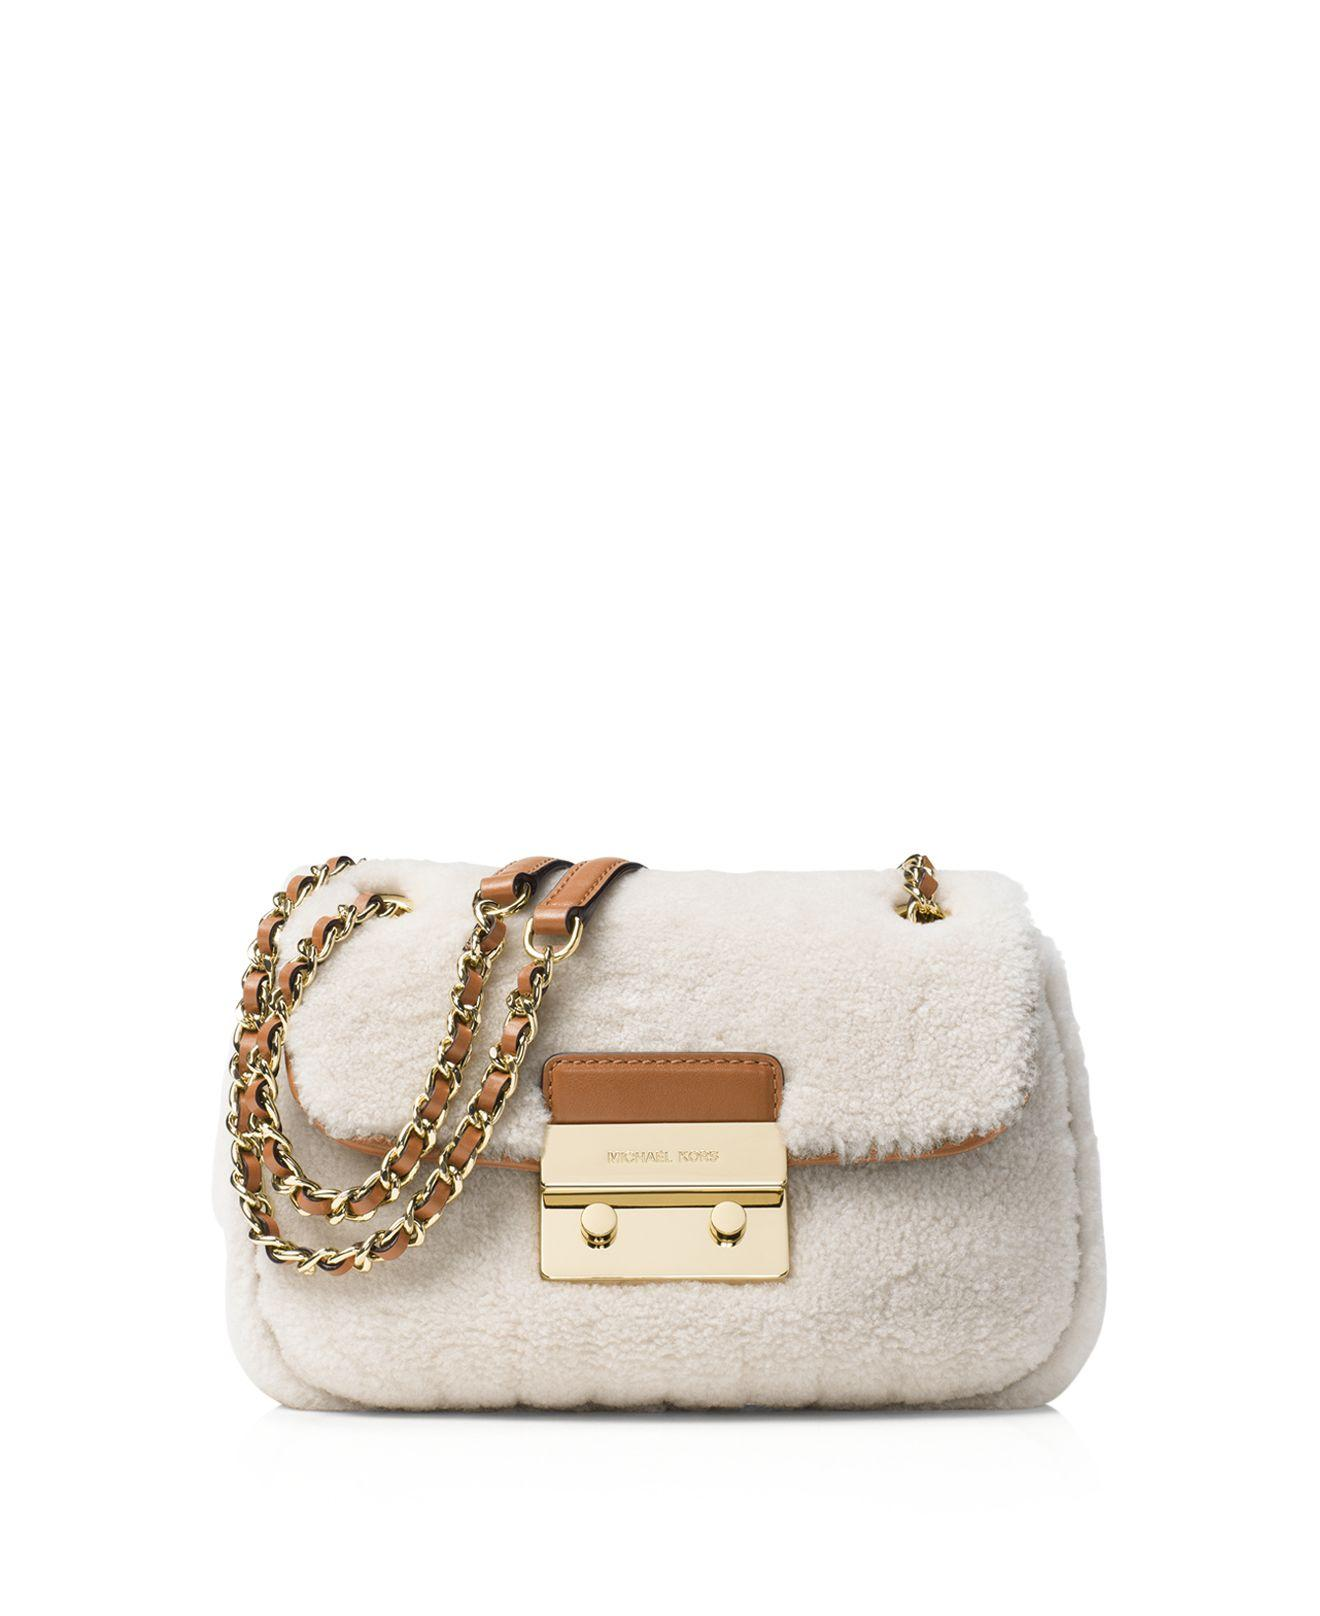 d658f849a90 Michael Kors Michael Sloan Small Chain Shoulder Bag in Natural - Lyst